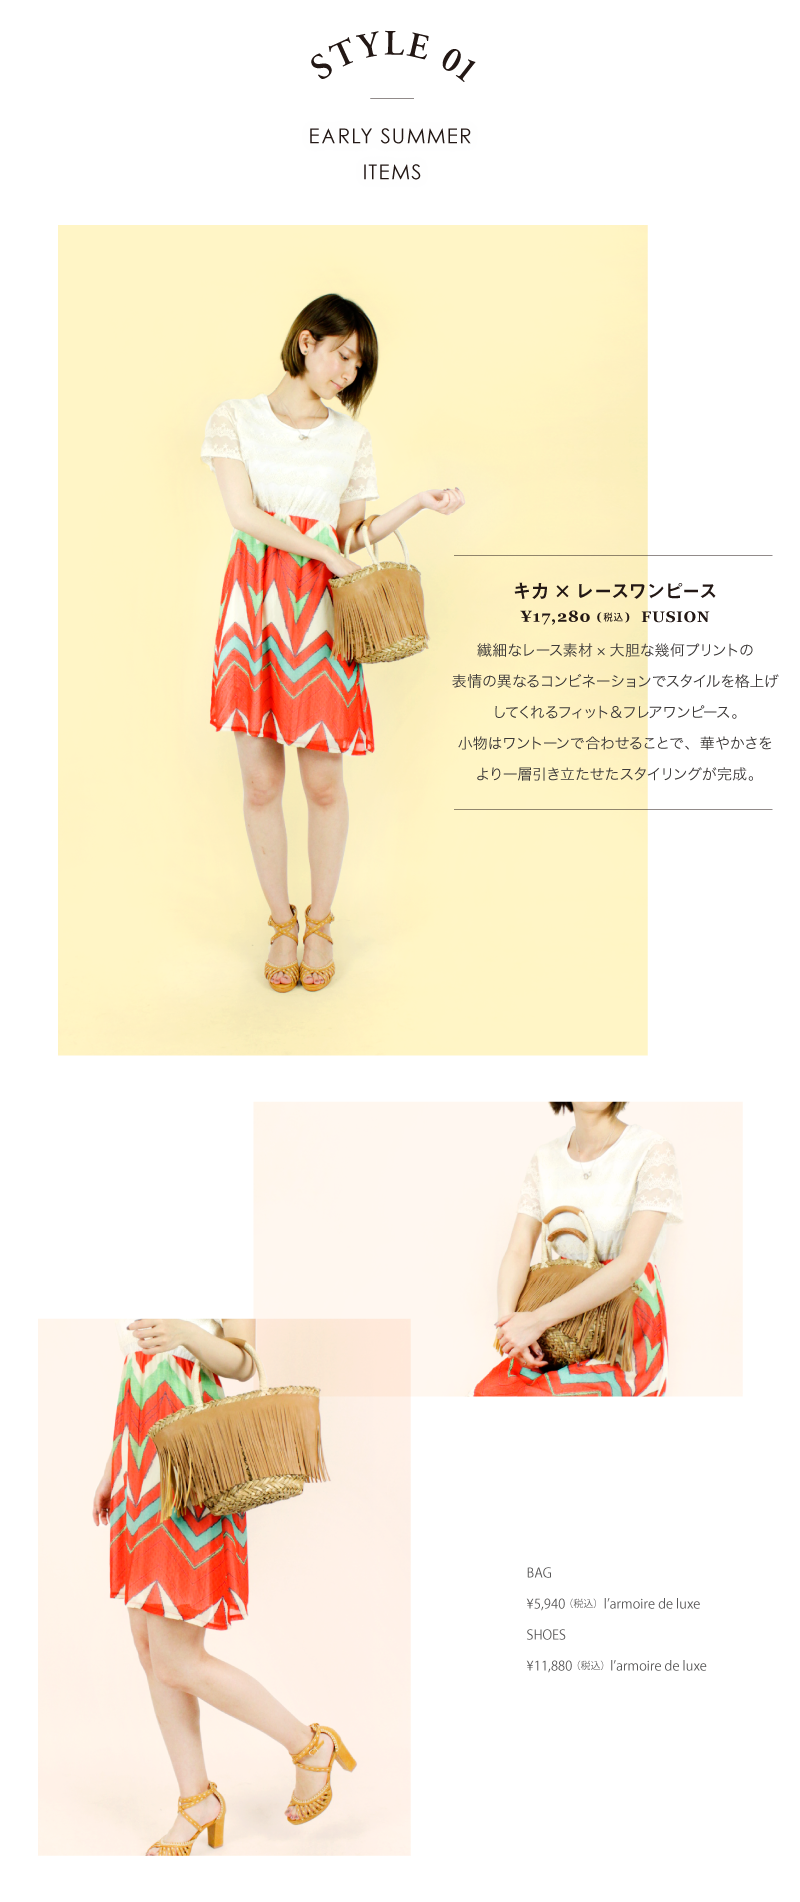 ac-RC_160512_earlysummer-item_vol1_07.png